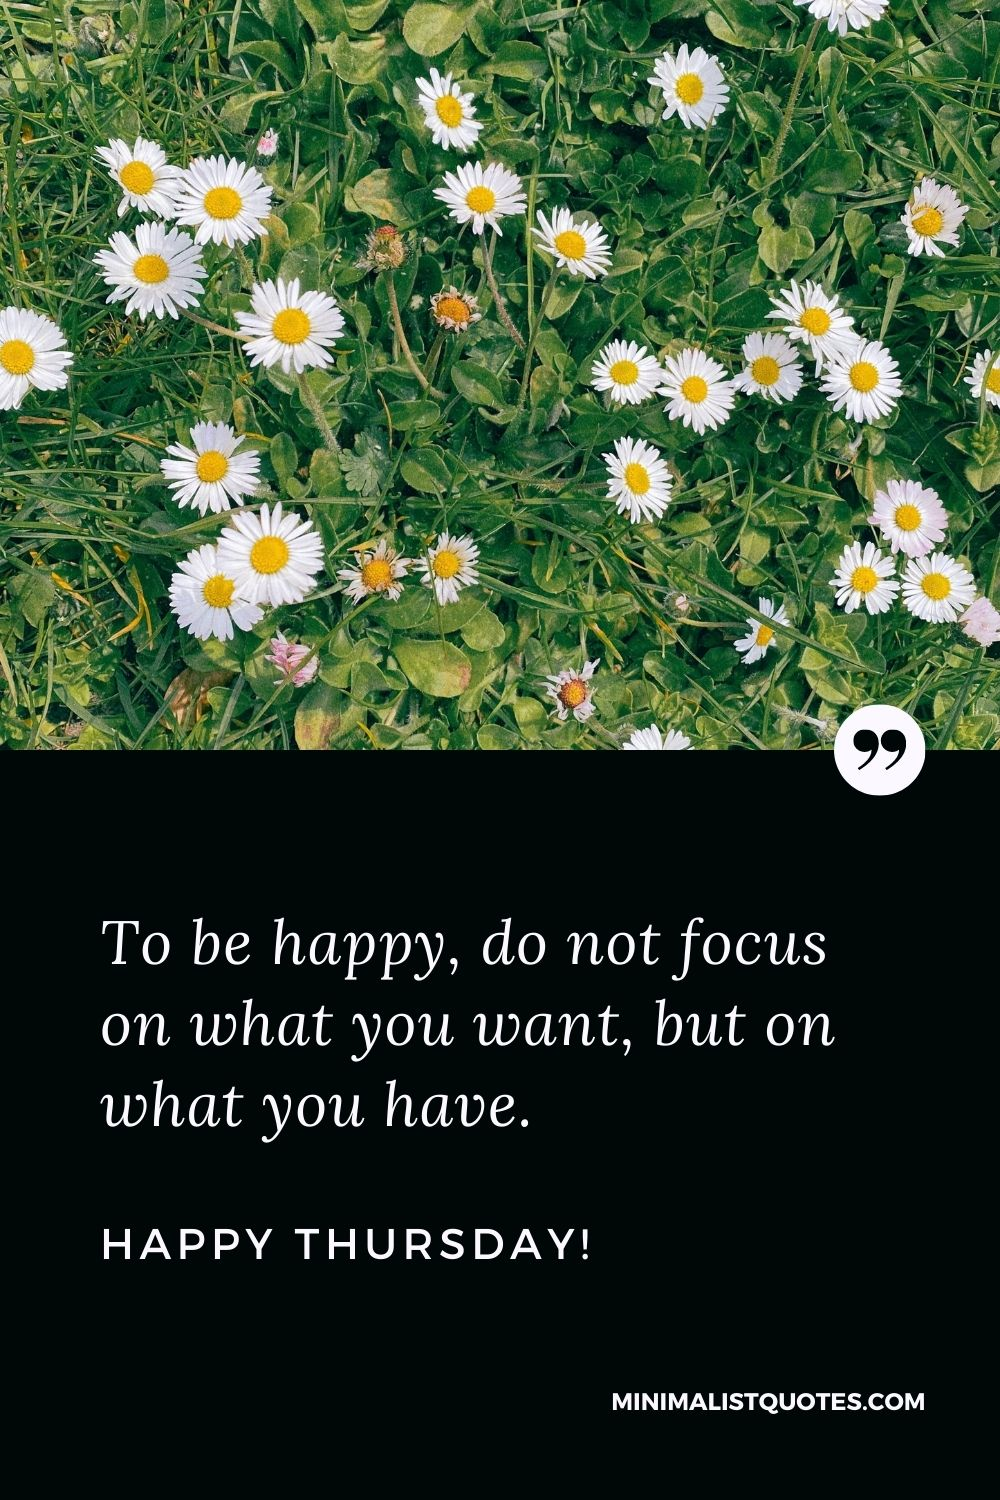 Thankful Thursday quotes: To be happy, do not focus on what you want, but on what you have. Happy Thursday!